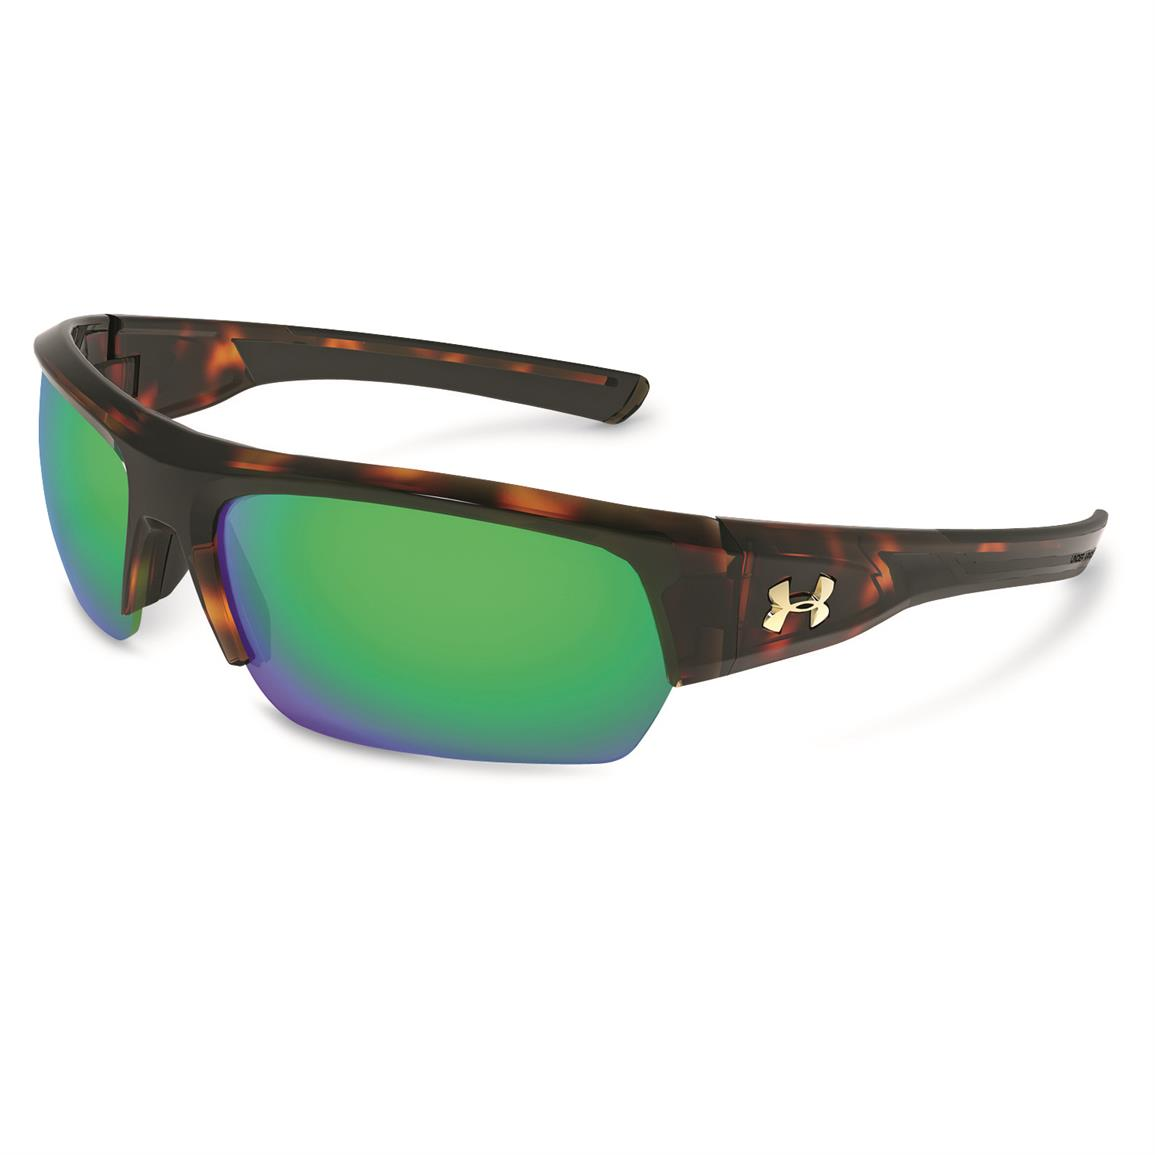 Under Armour Men's Big Shot Polarized Sunglasses, Brown/Green